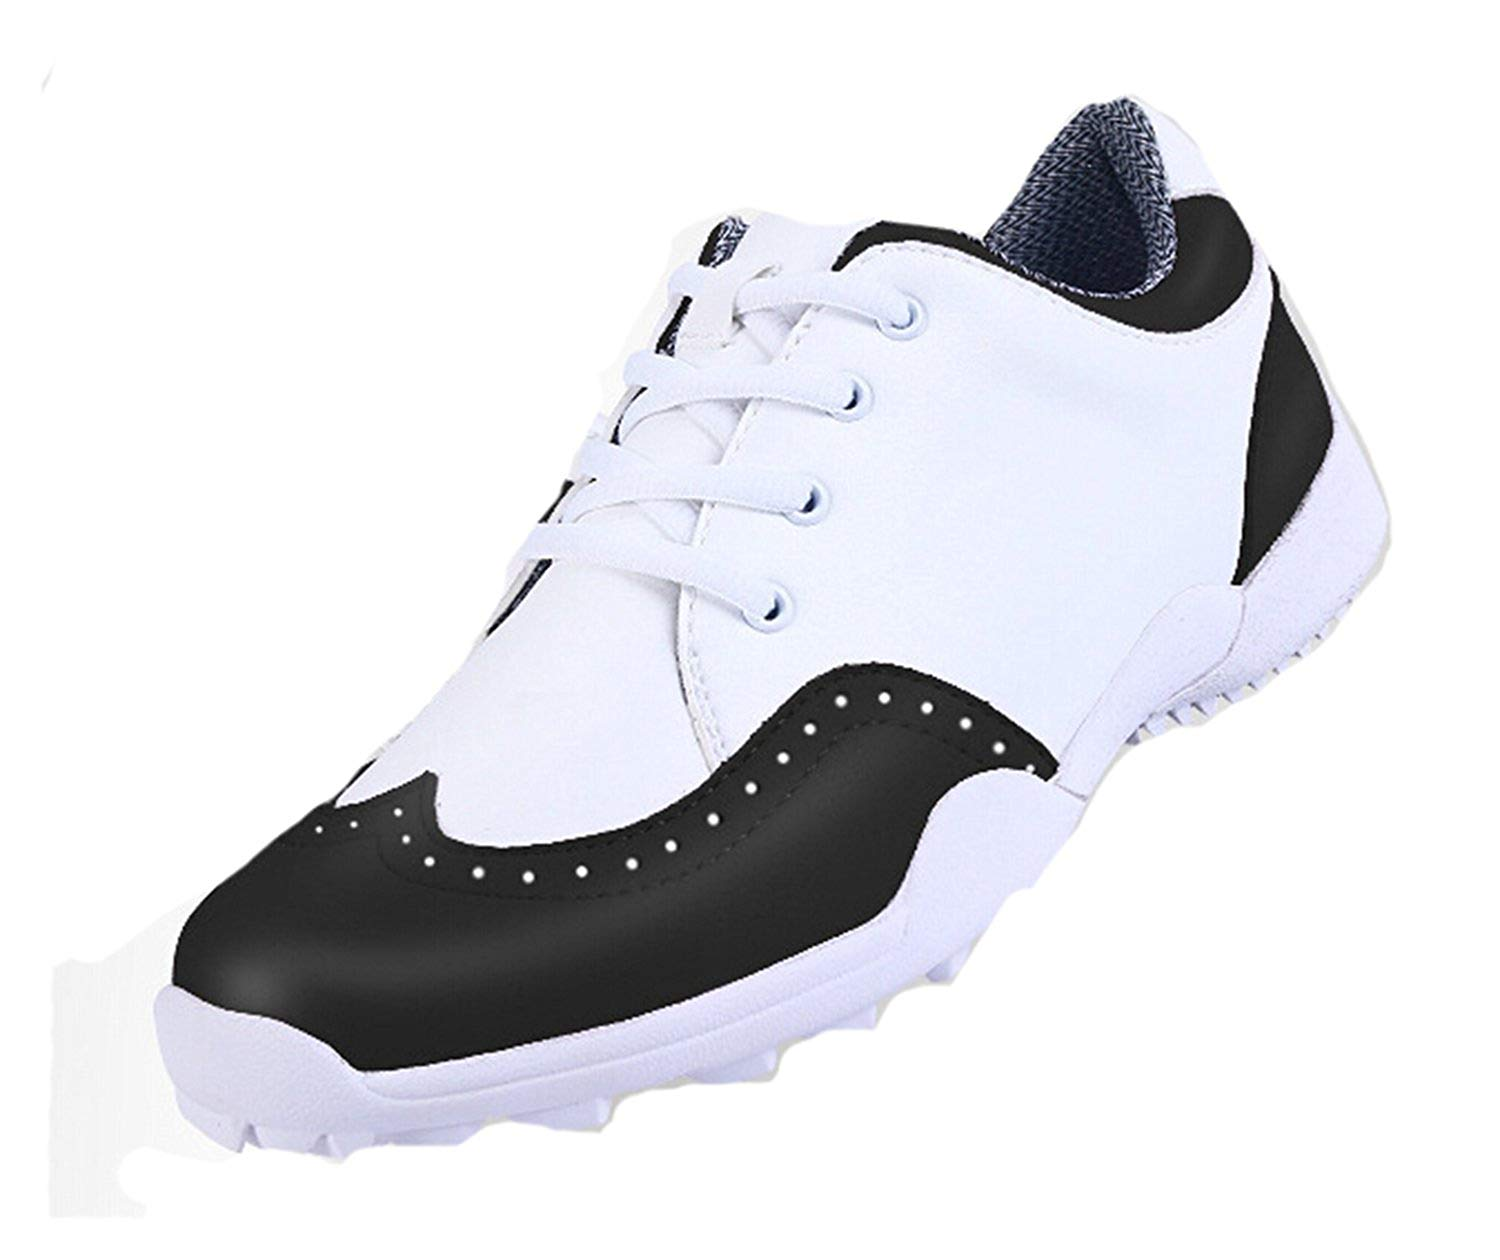 4c89956f5a9c Get Quotations · Golf Shoes Women s Outdoor Breathable Golf Shoes Running Shoes  Sneakers for Women